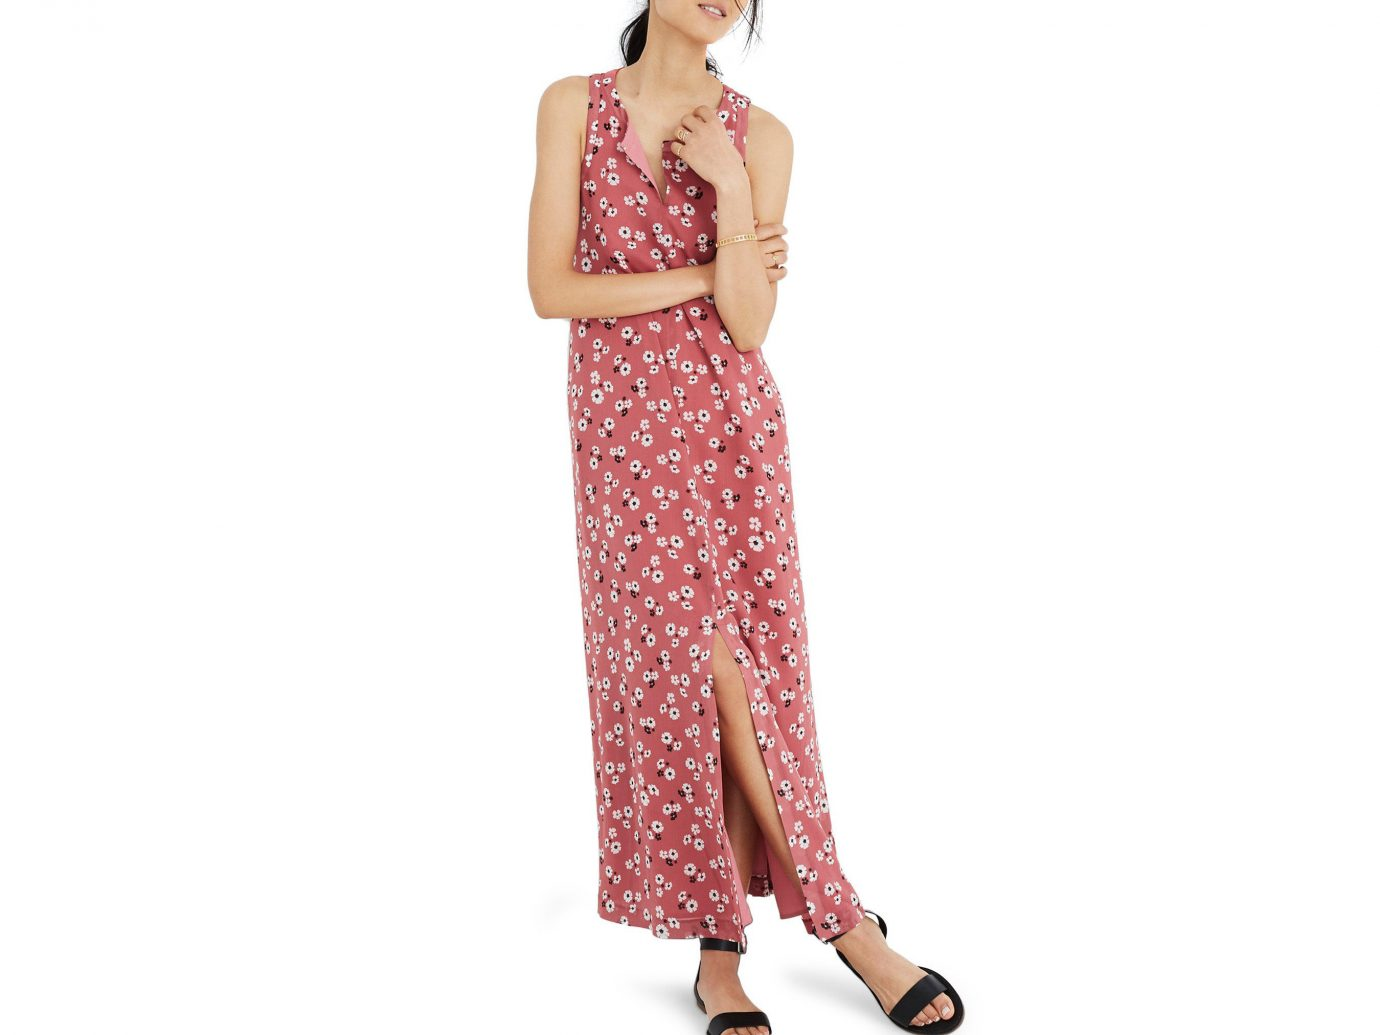 Style + Design Travel Shop clothing day dress dress fashion model shoulder girl neck waist peach pattern magenta joint trouser